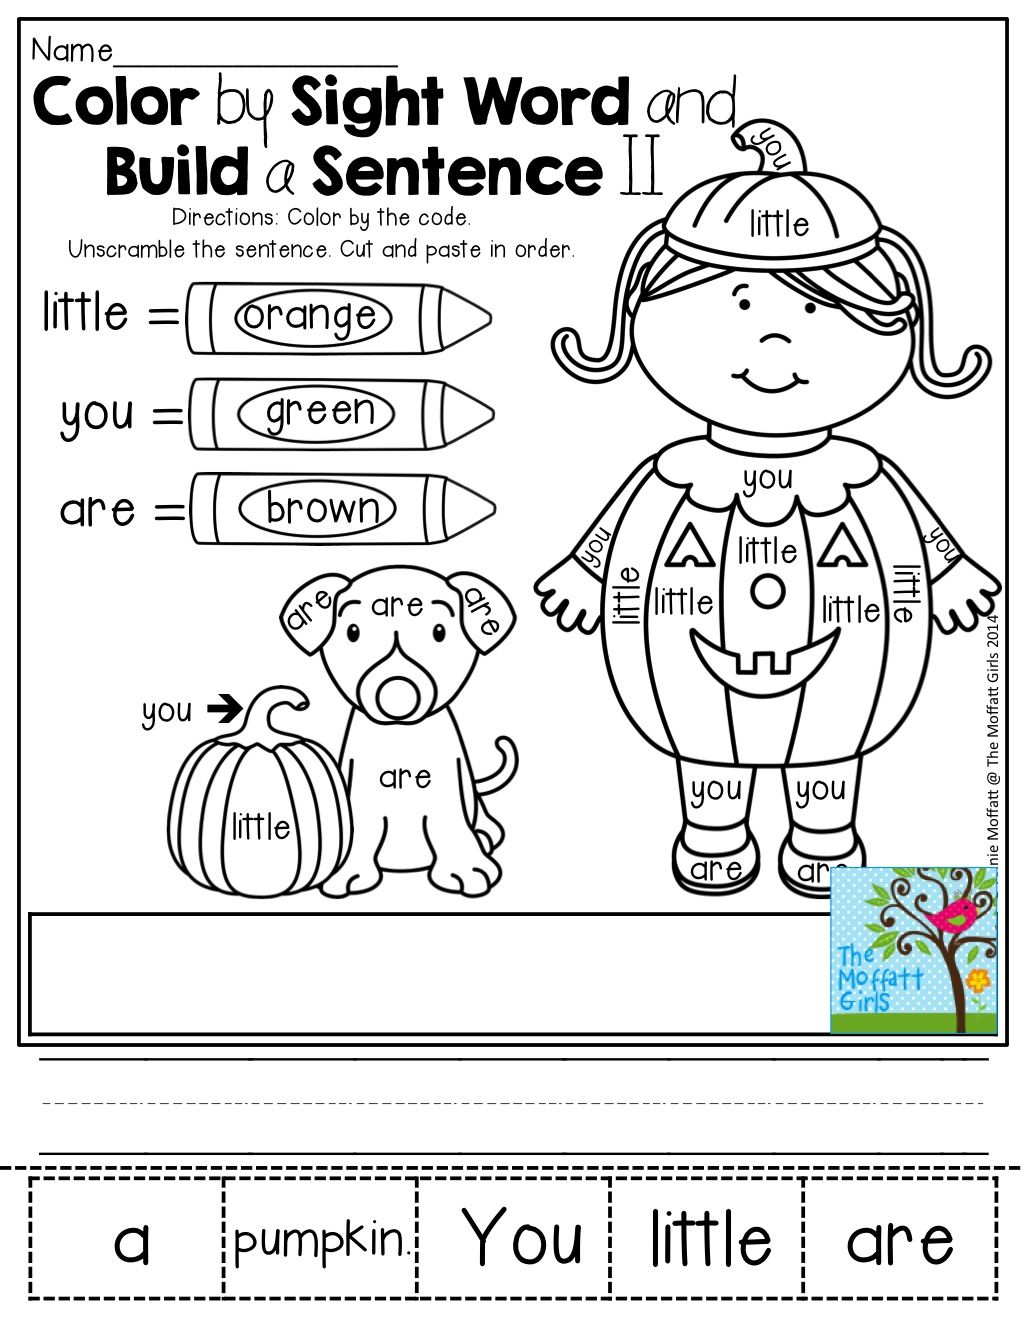 Color By Sight Word And Build A Sentence